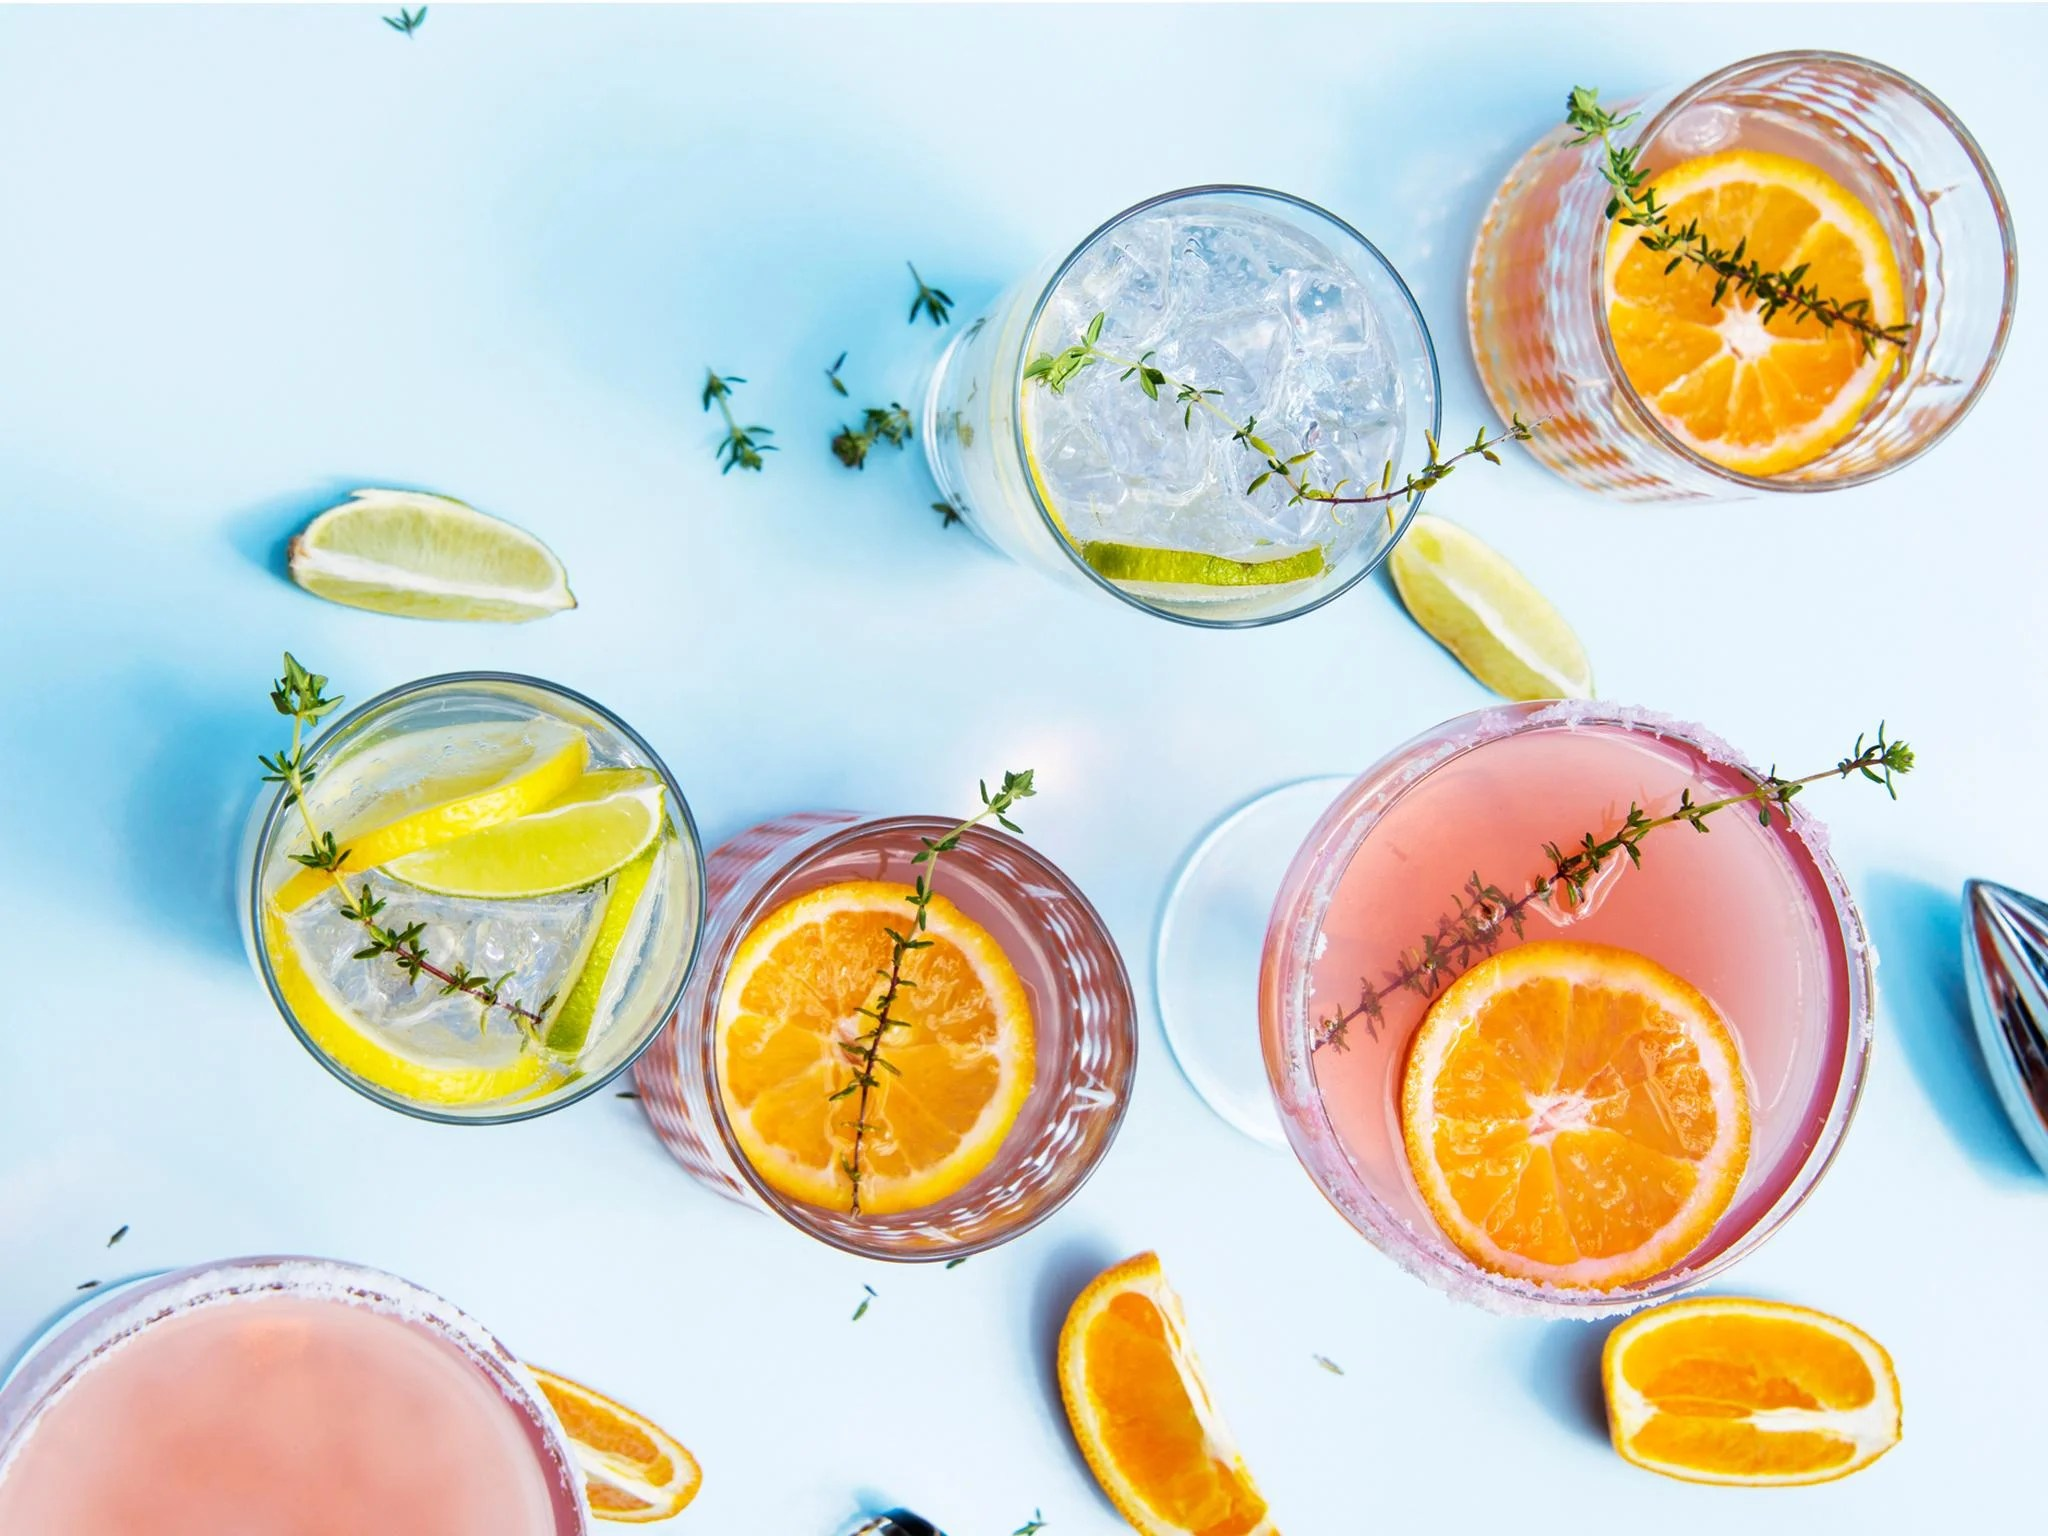 The Easy Cocktail Recipes You Need For The Bank Holiday During Lockdown The Independent